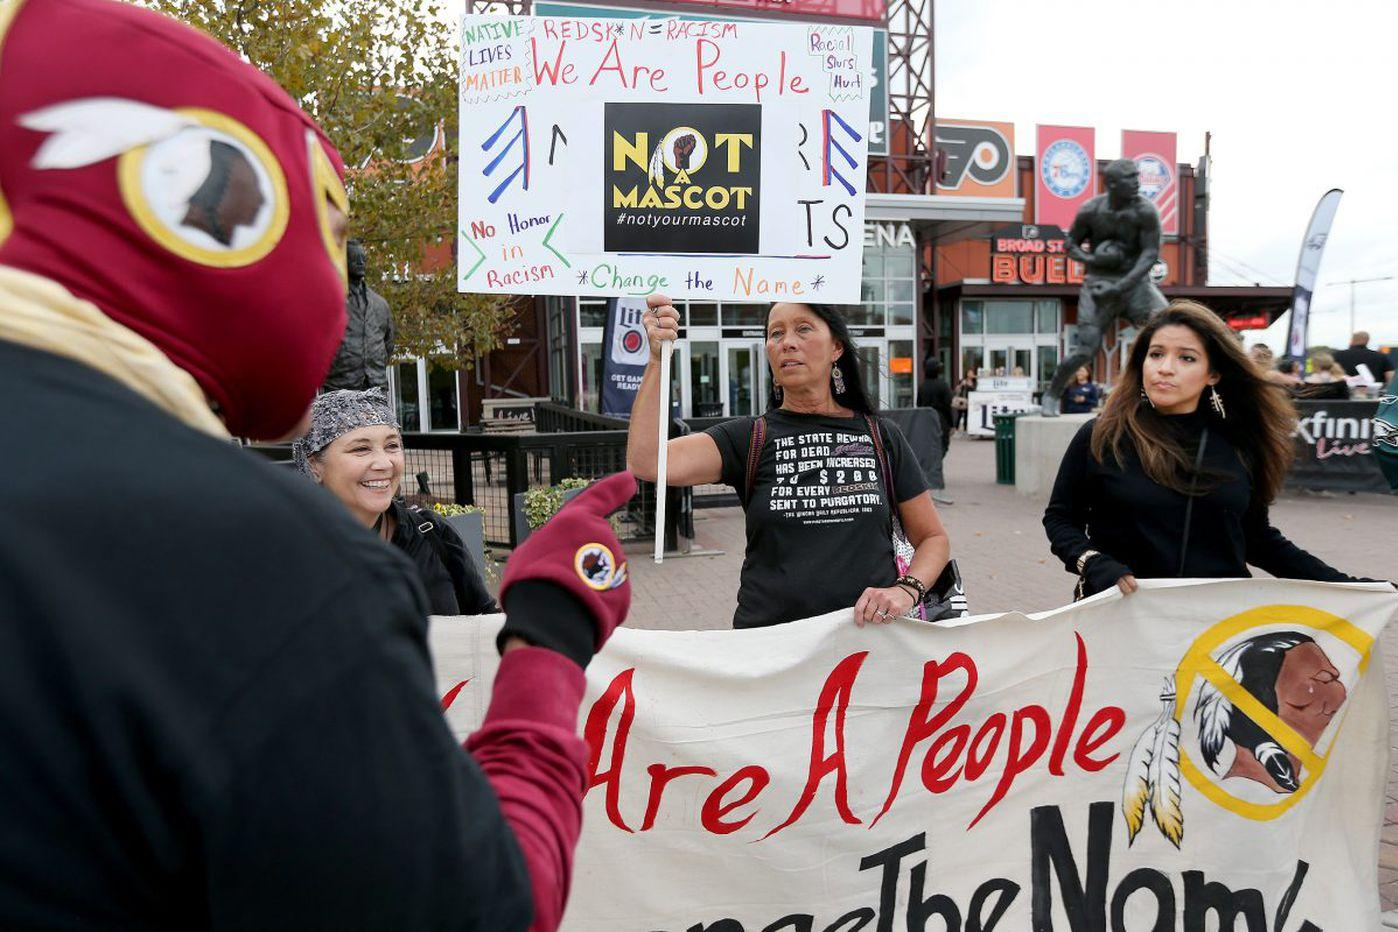 Protesters protesting use of Washington Redskins logo while counterprotesters point at them